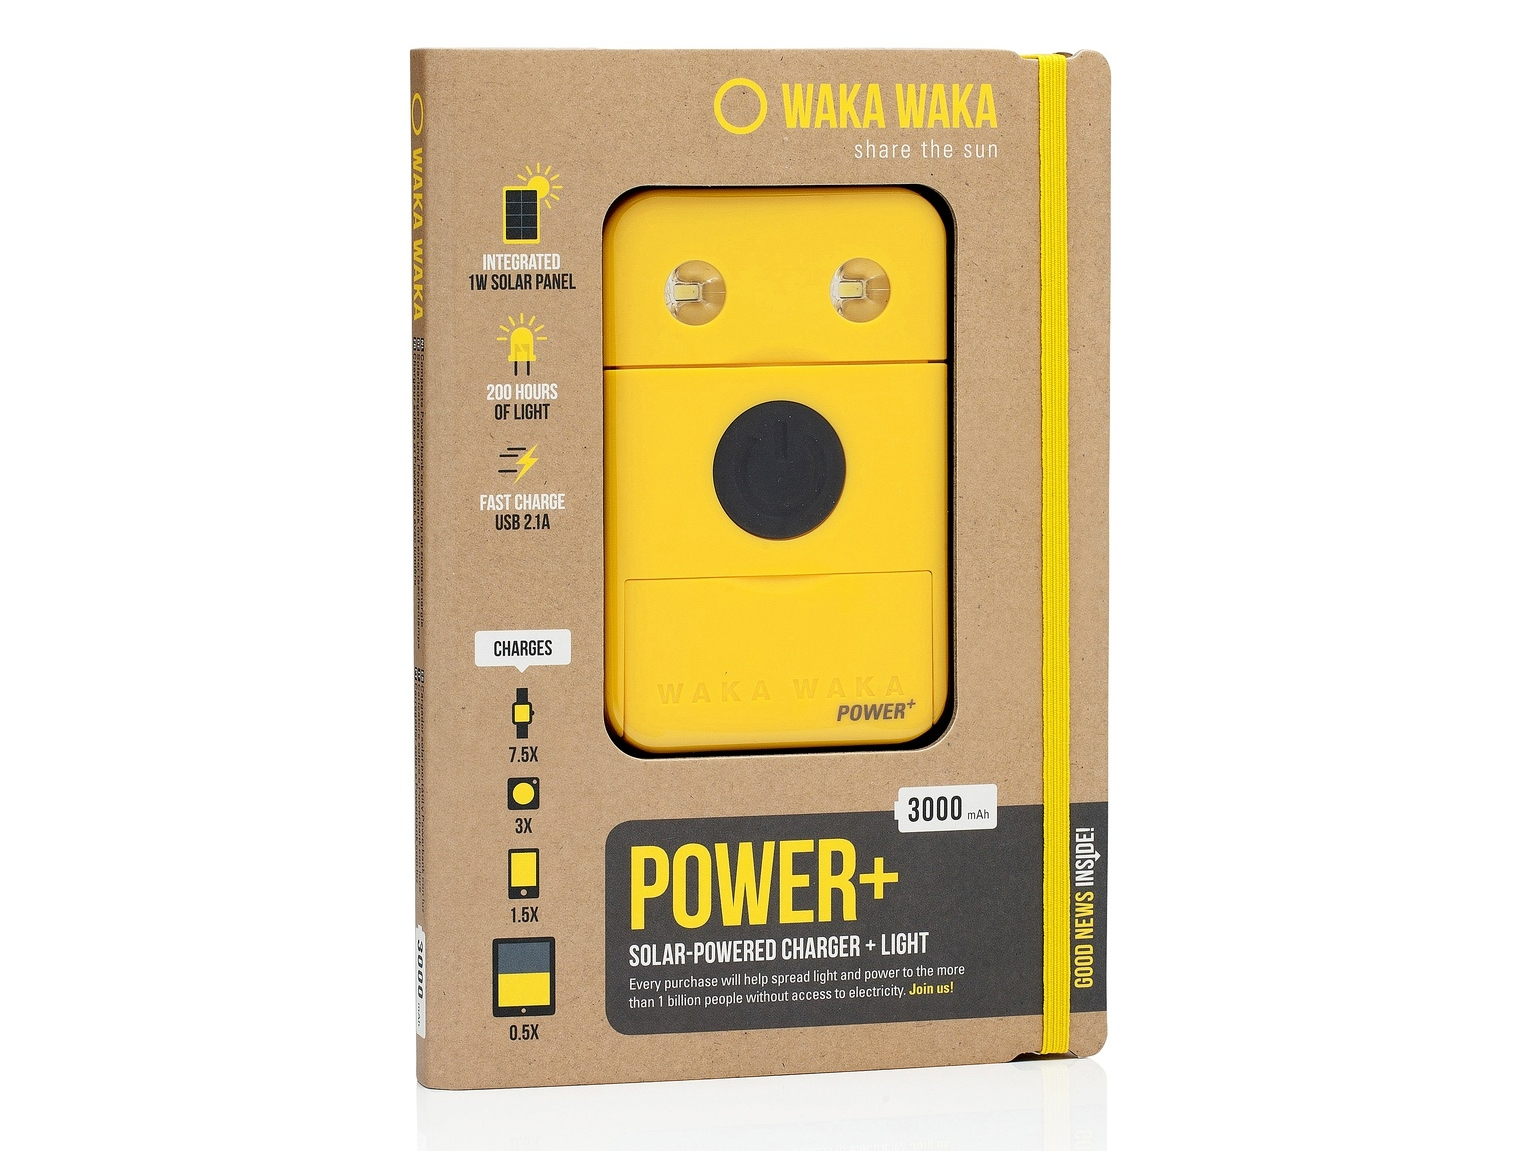 Waka Waka Power+ - Solar-powered battery pack that brings light to those in need